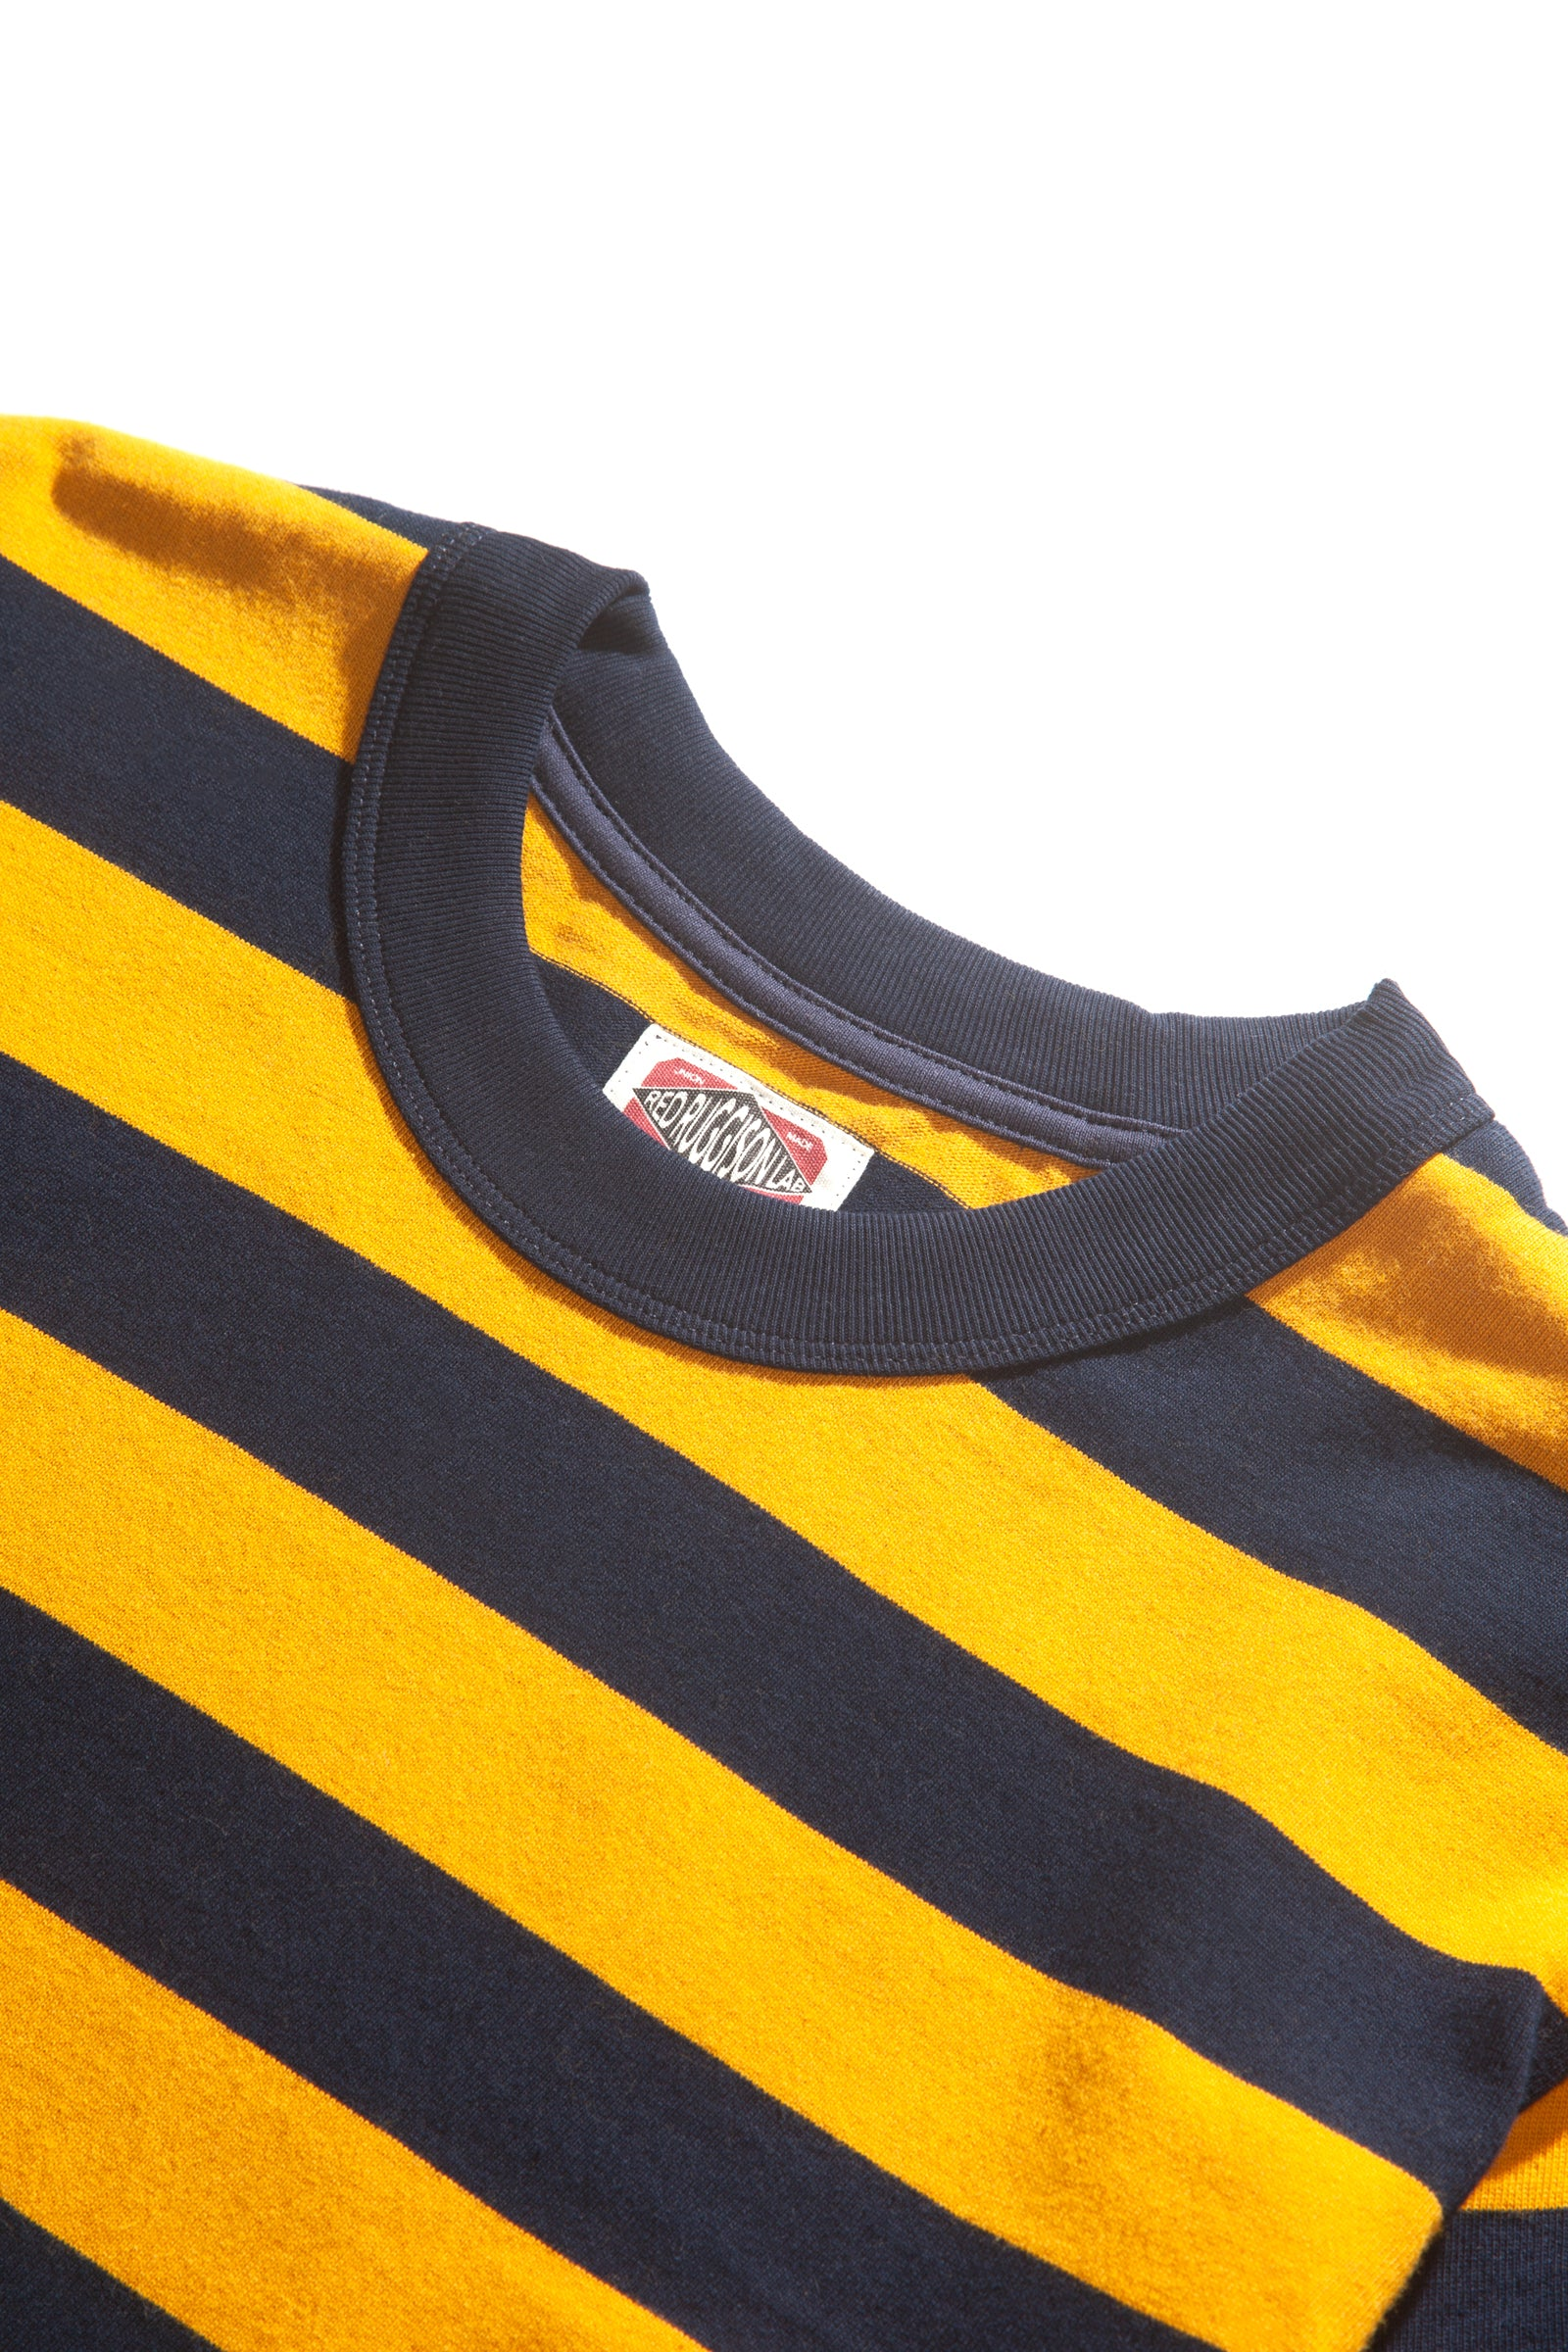 Red Ruggison - Border Short Sleeve T-Shirt - Yellow/Navy